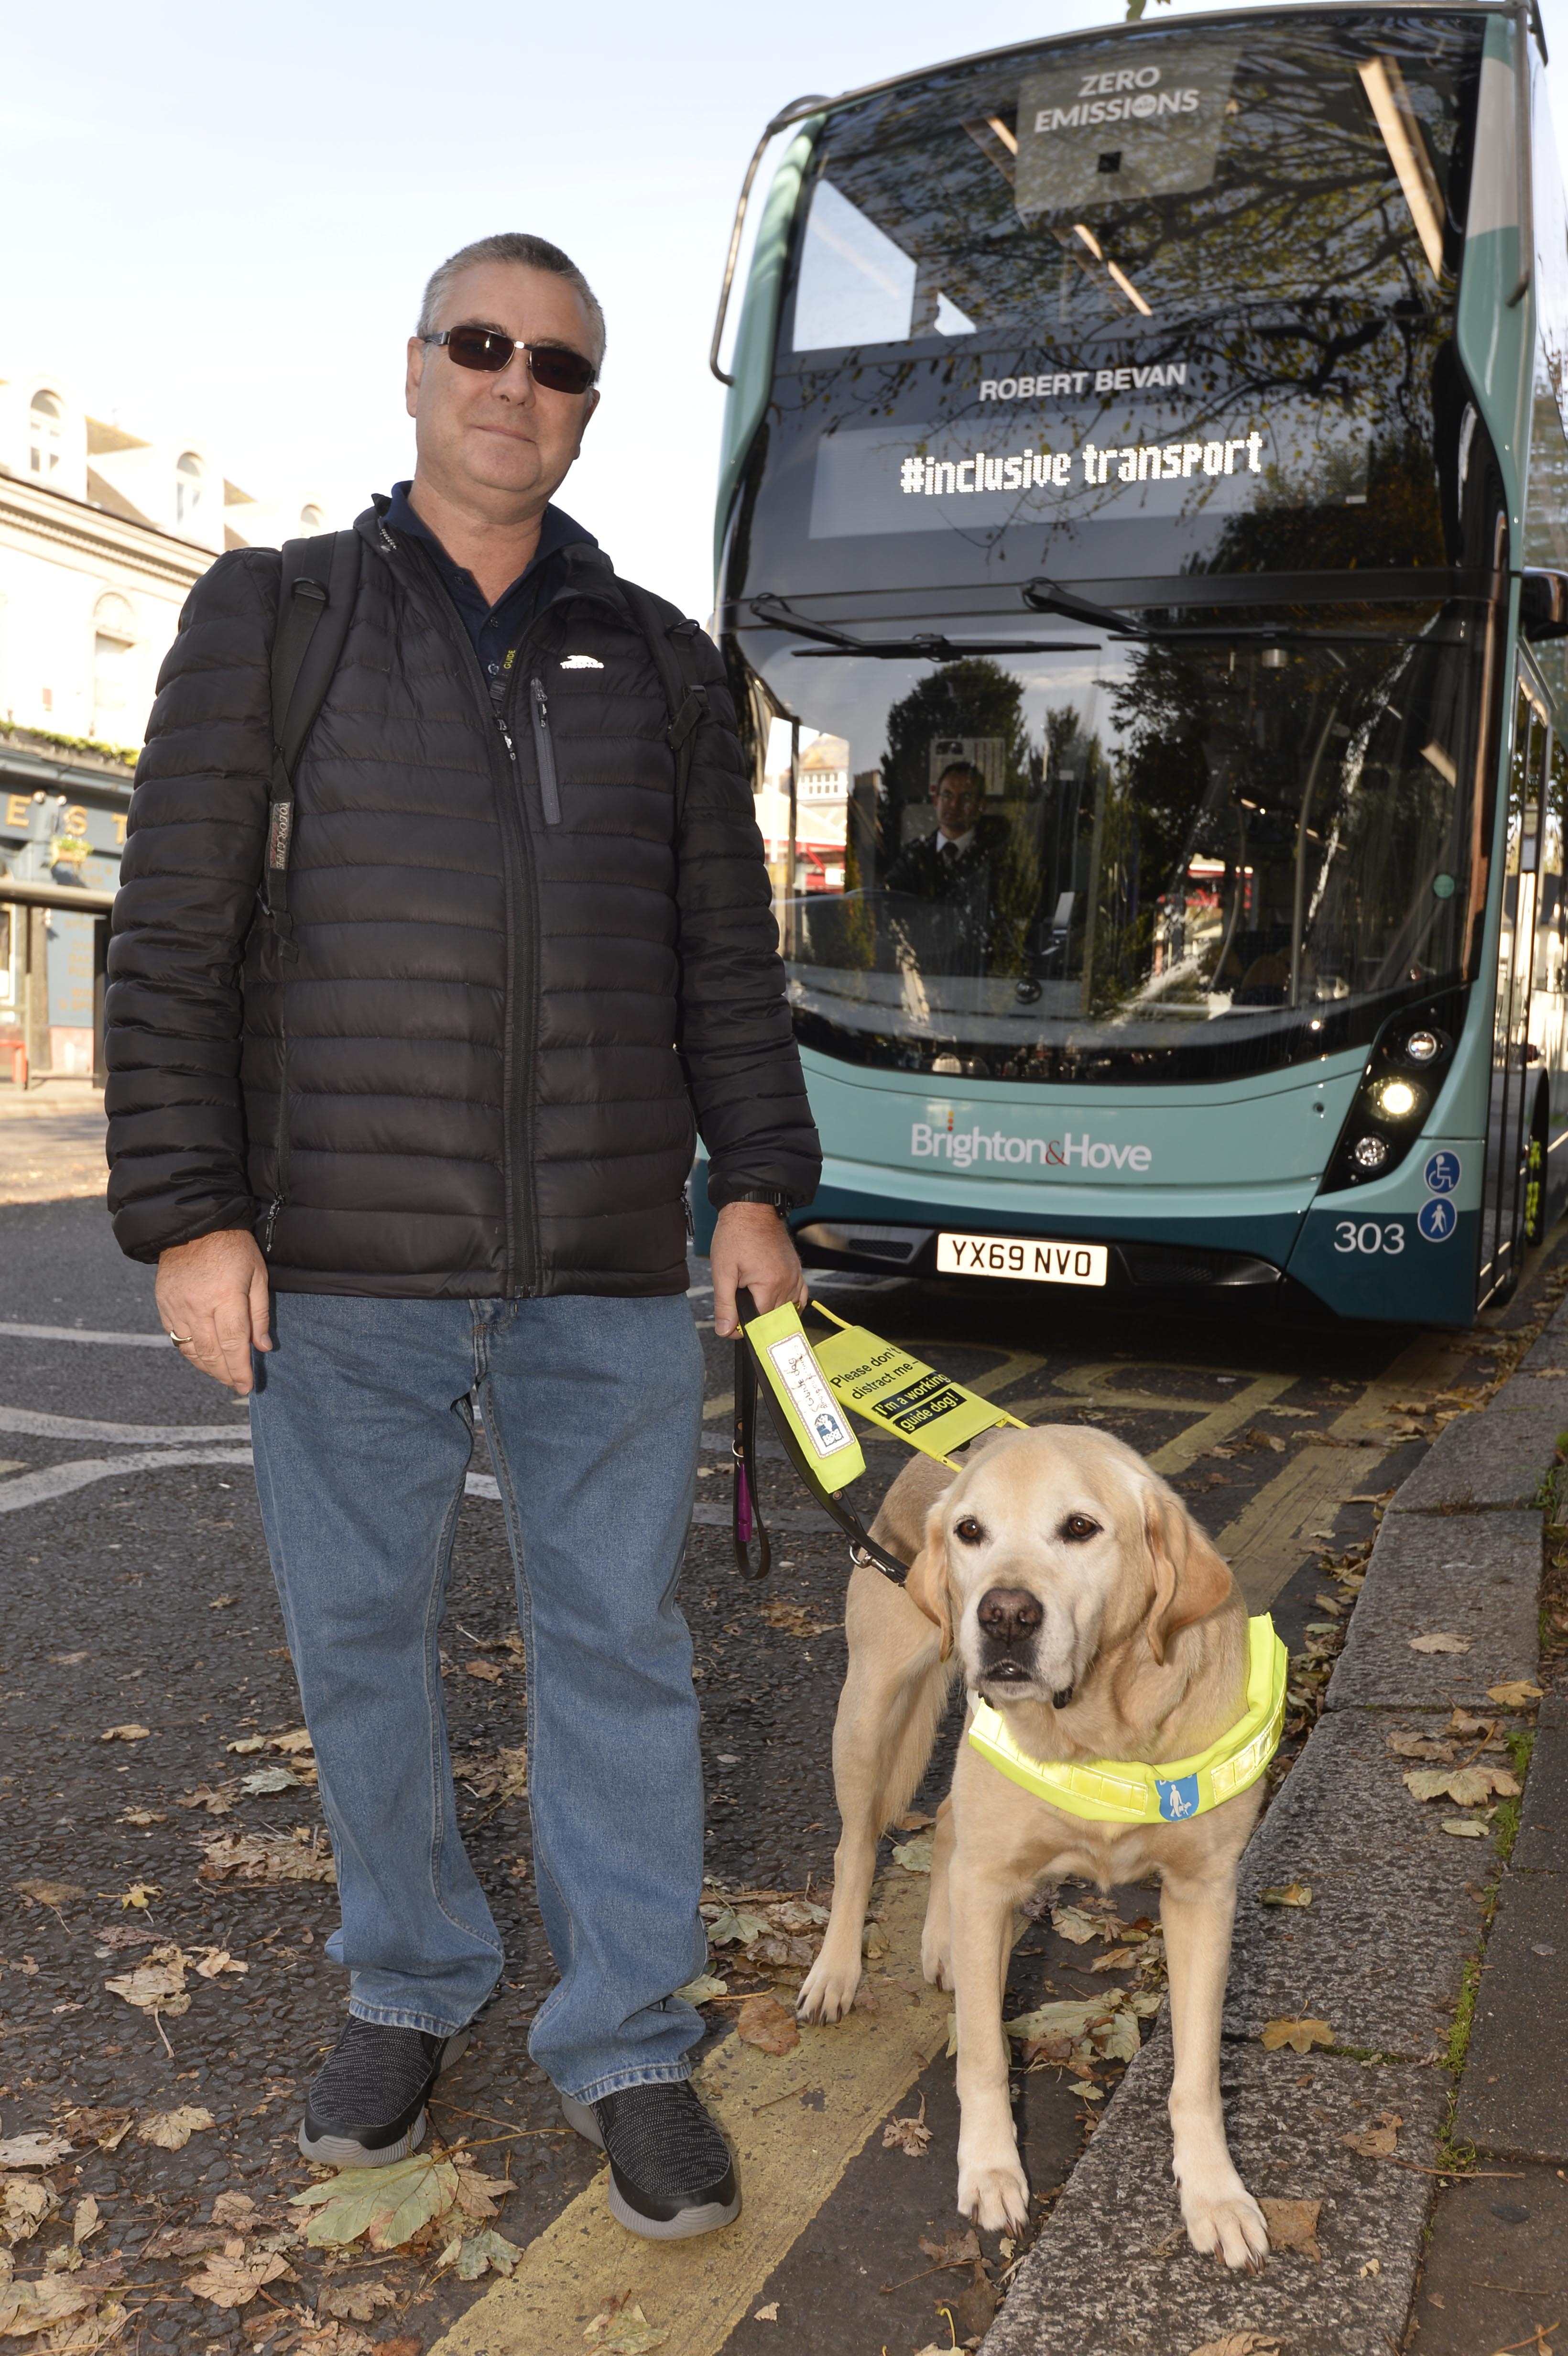 An image of Graham and a guide dog.